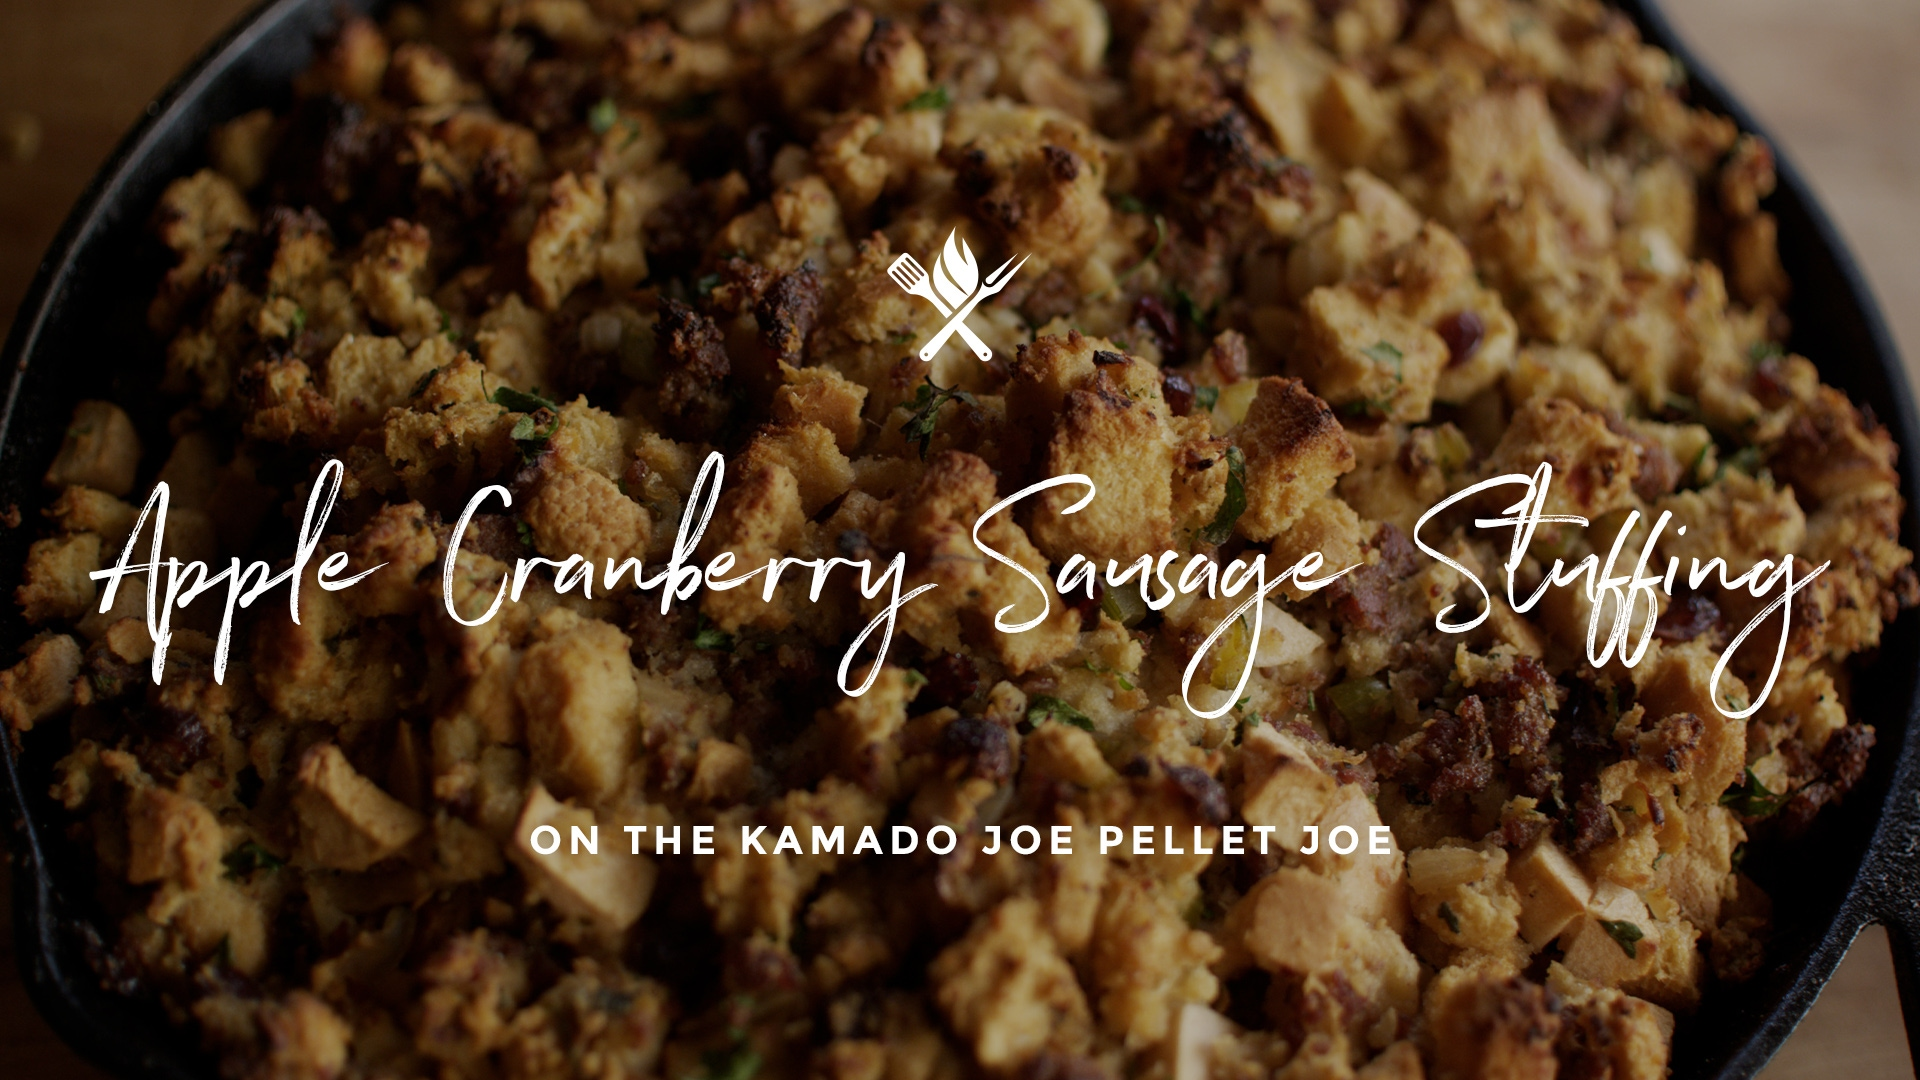 How to make Apple Cranberry Sausage Stuffing